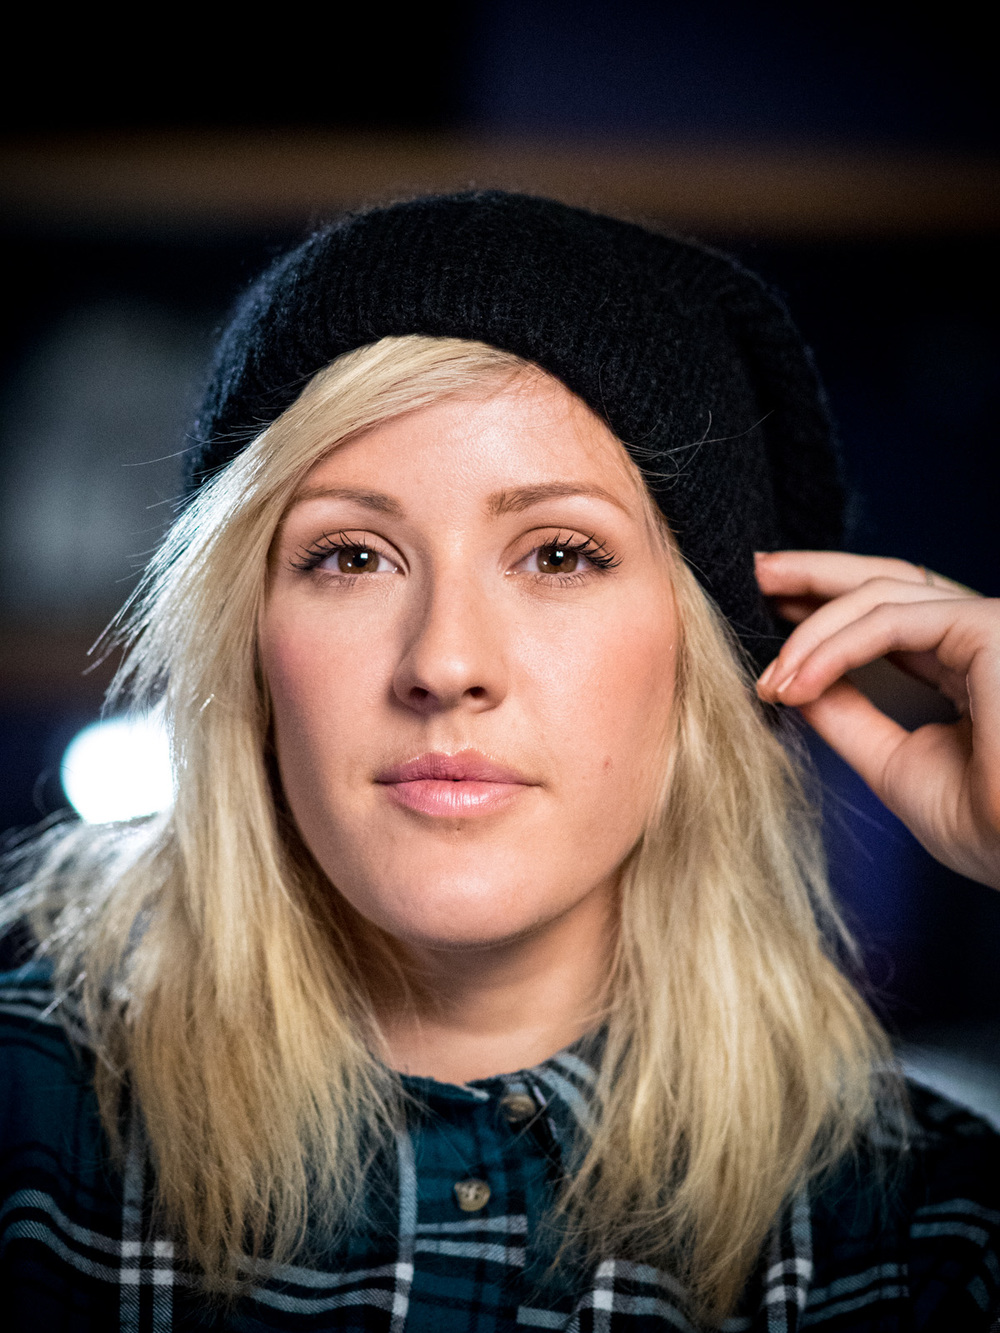 Ellie Goulding at Abbey Road Studios, London